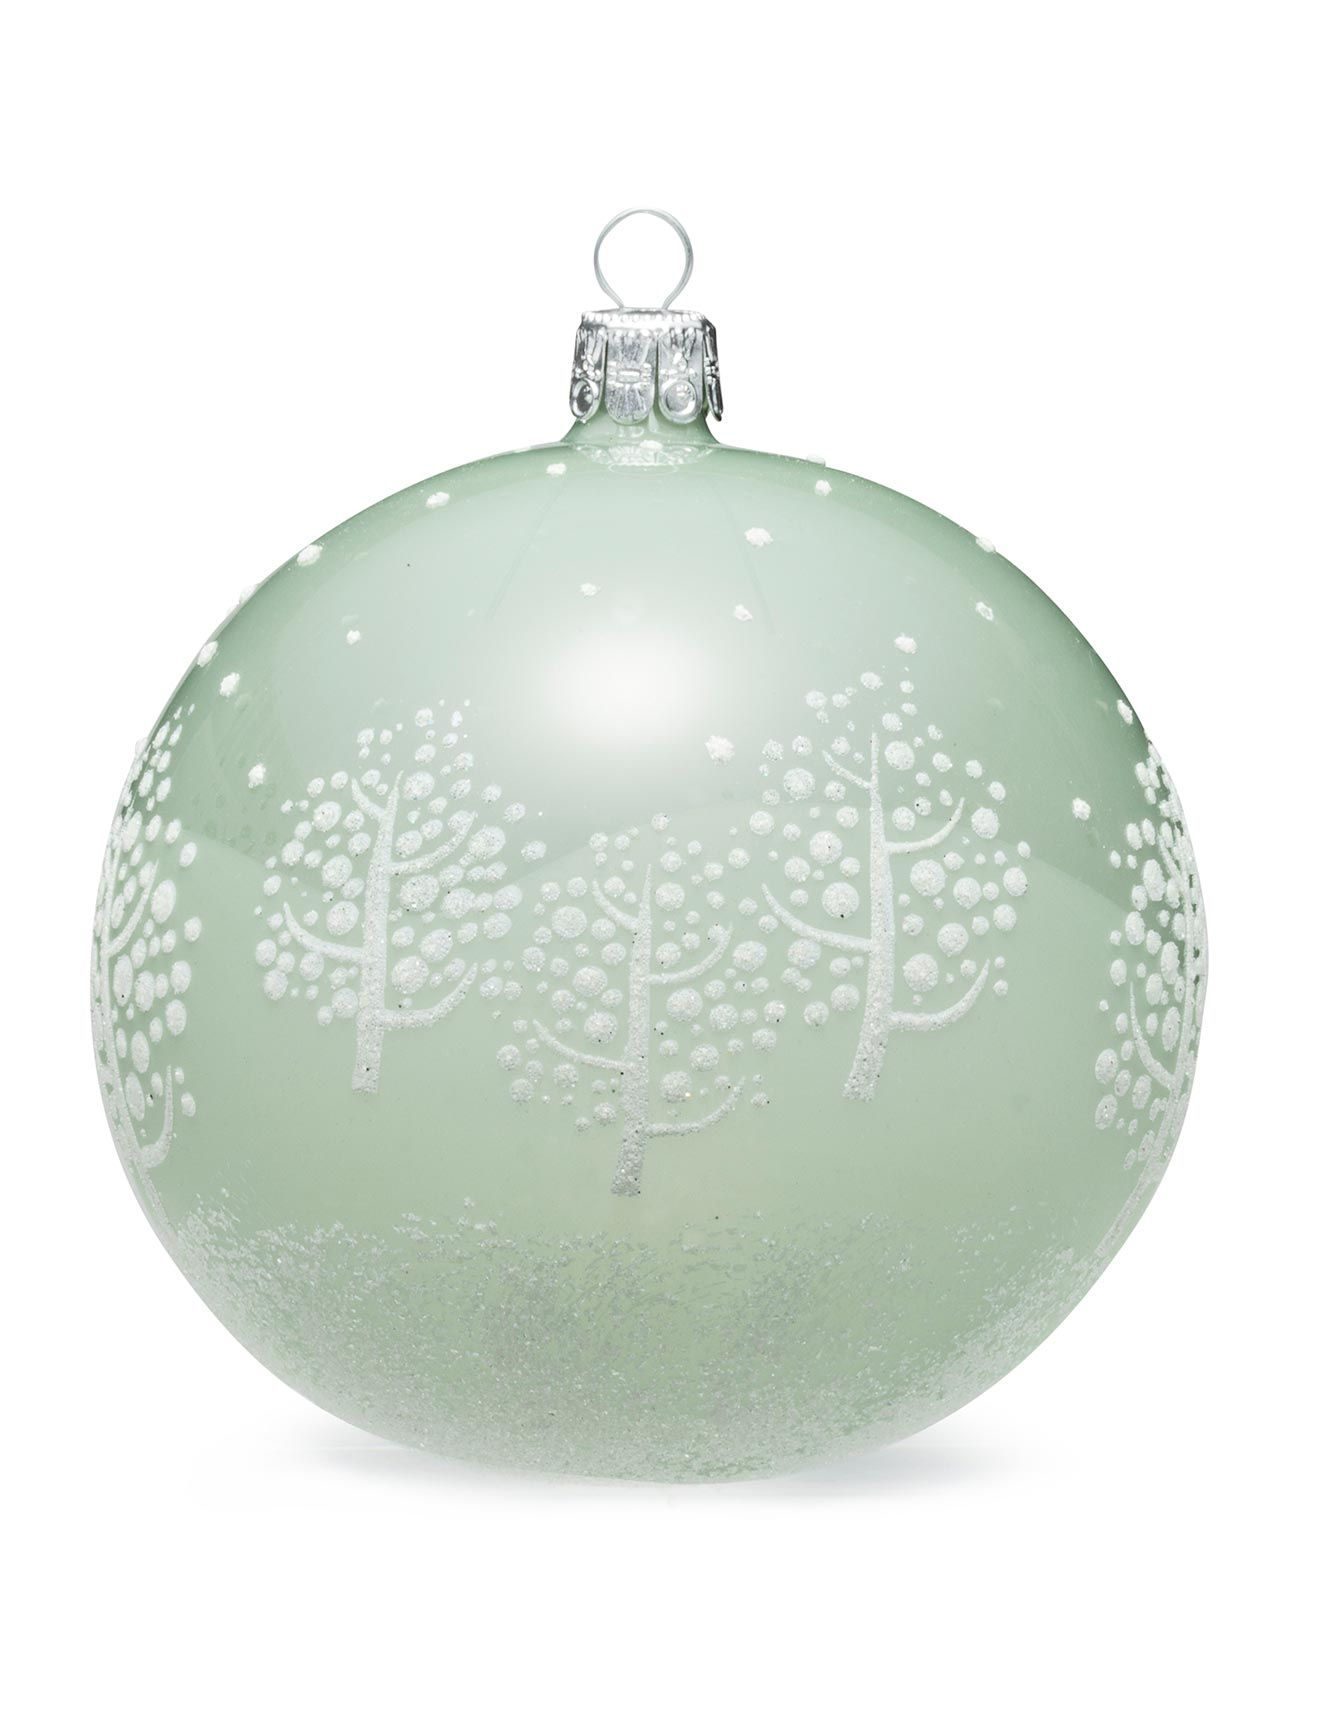 Coastal Snow Tree Ornament at David Jones Store | Crafts - Christmas ...